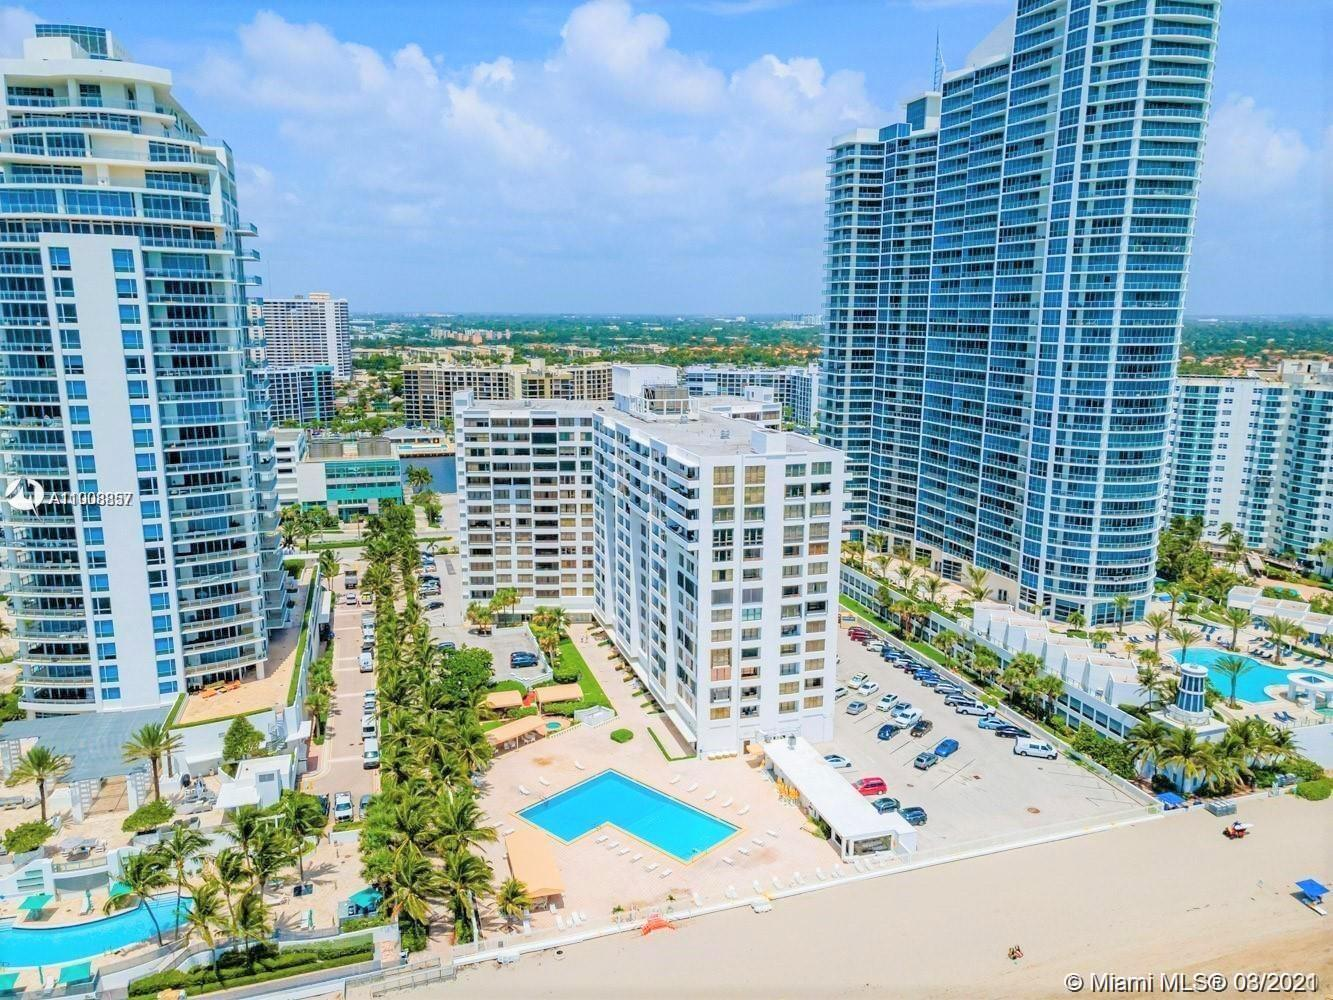 BEST PRICE ~ OCEANFRONT CONDO, PERFECT FOR YOUR RELOCATION, INVESTMENT DREAMS, OR PRIMARY RESIDENCE!